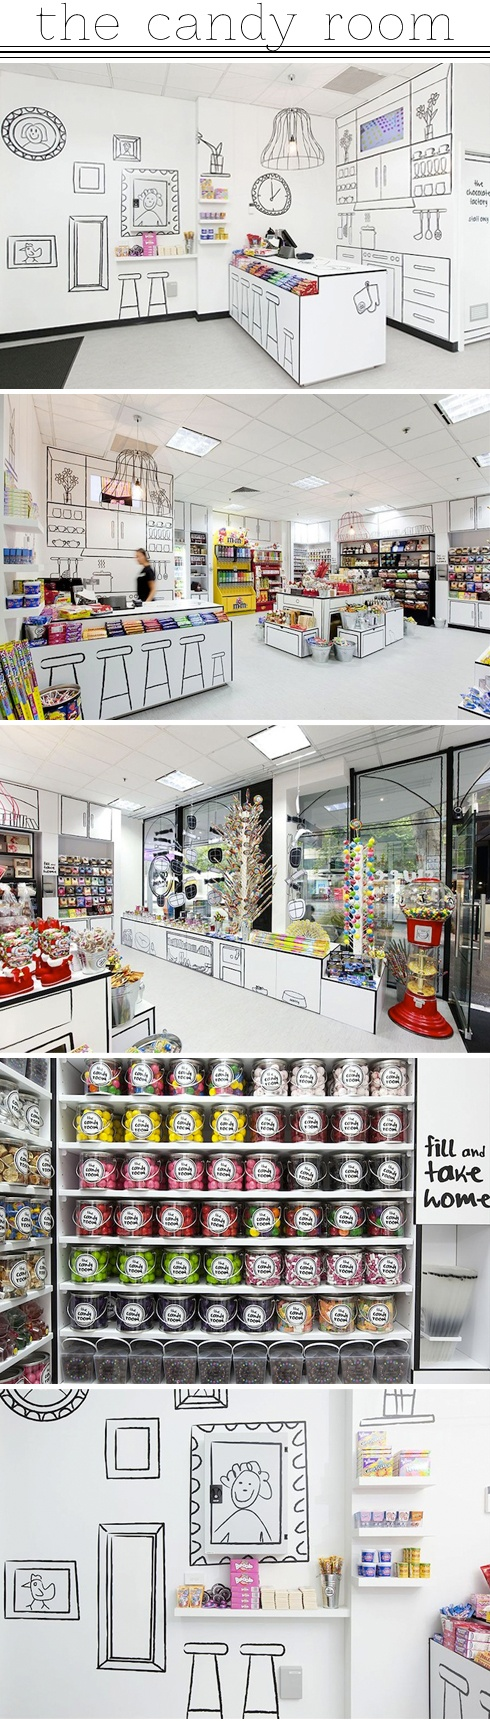 The Candy Room, por Red Design Group